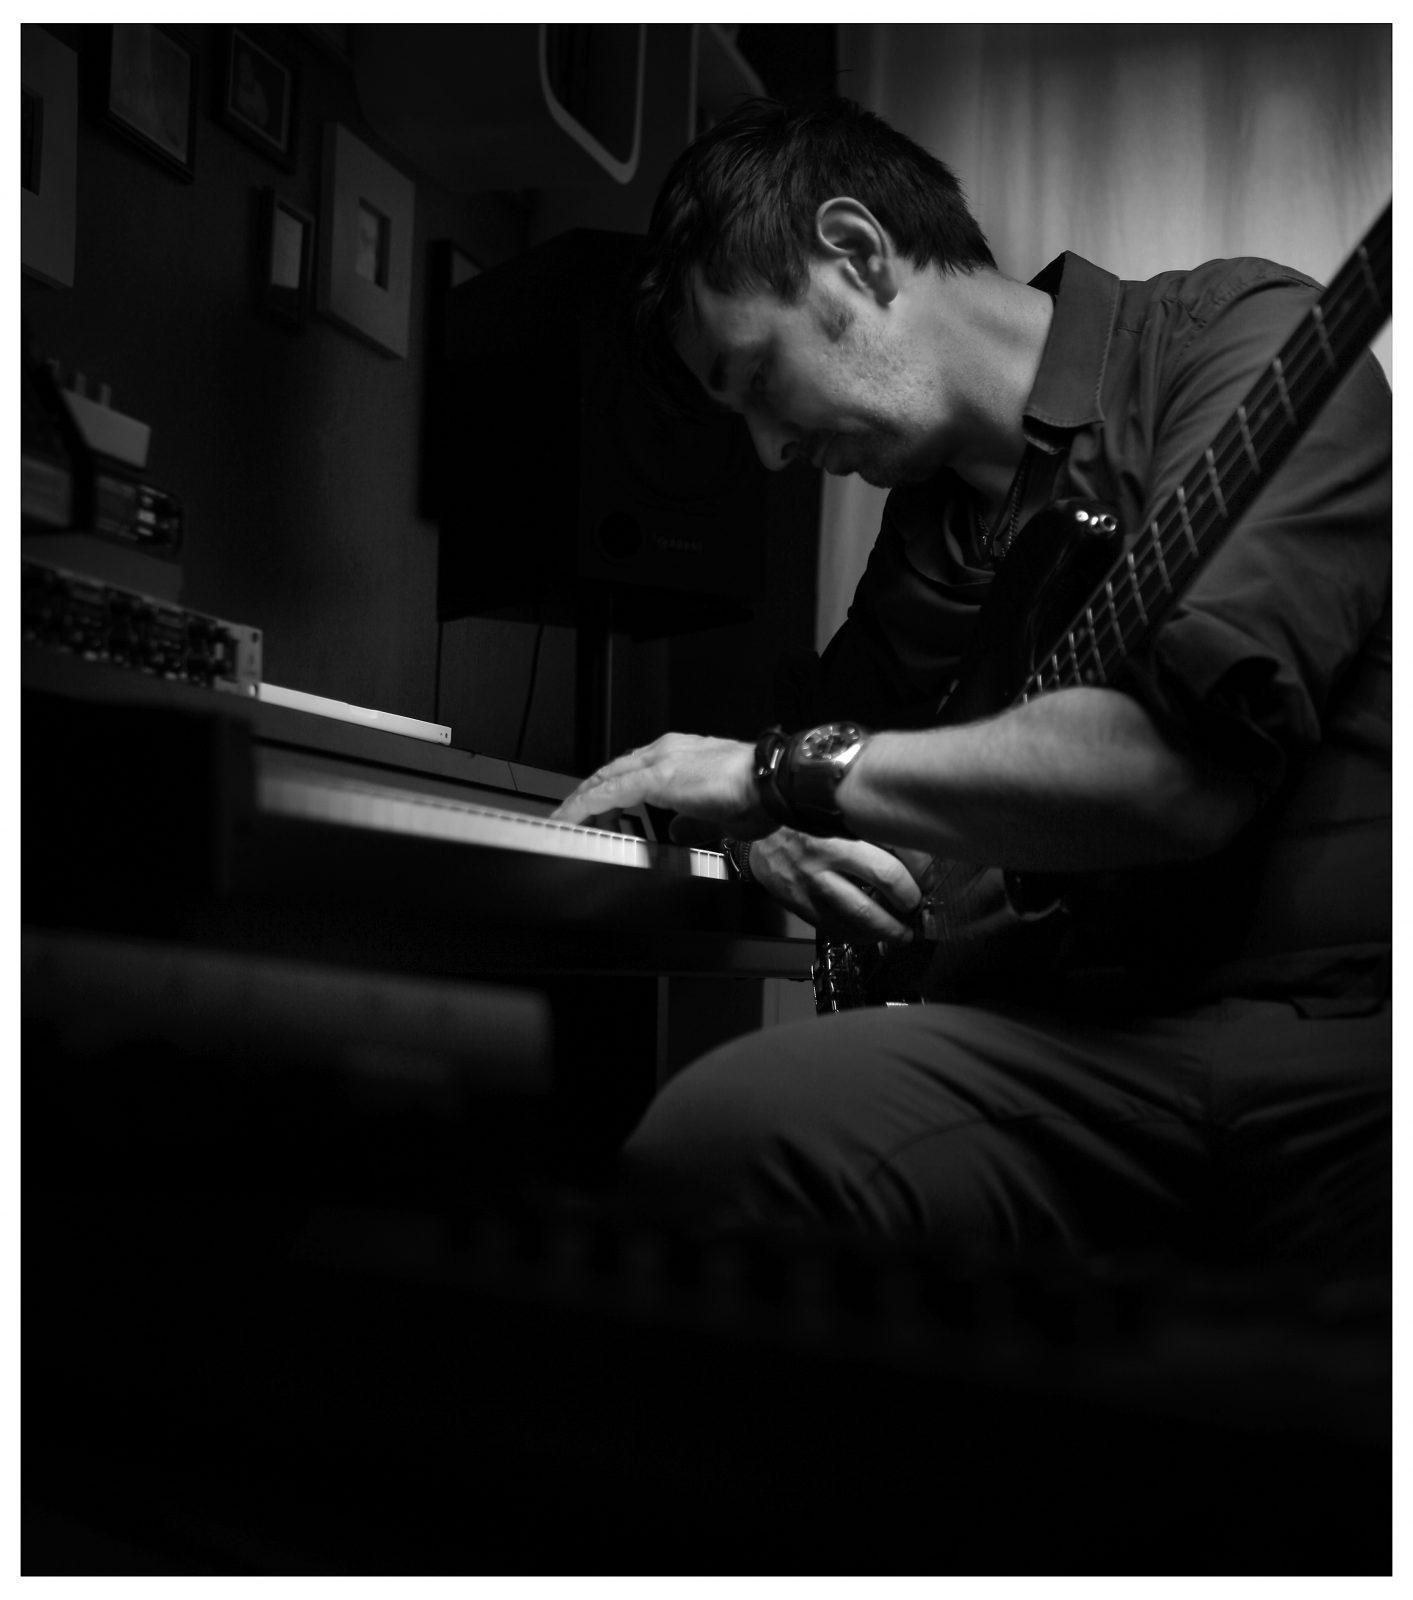 The musician David Alleckna of Hamburg sitting in his studio, working on a production, sitting by his keyboard, having his bass on his lab.